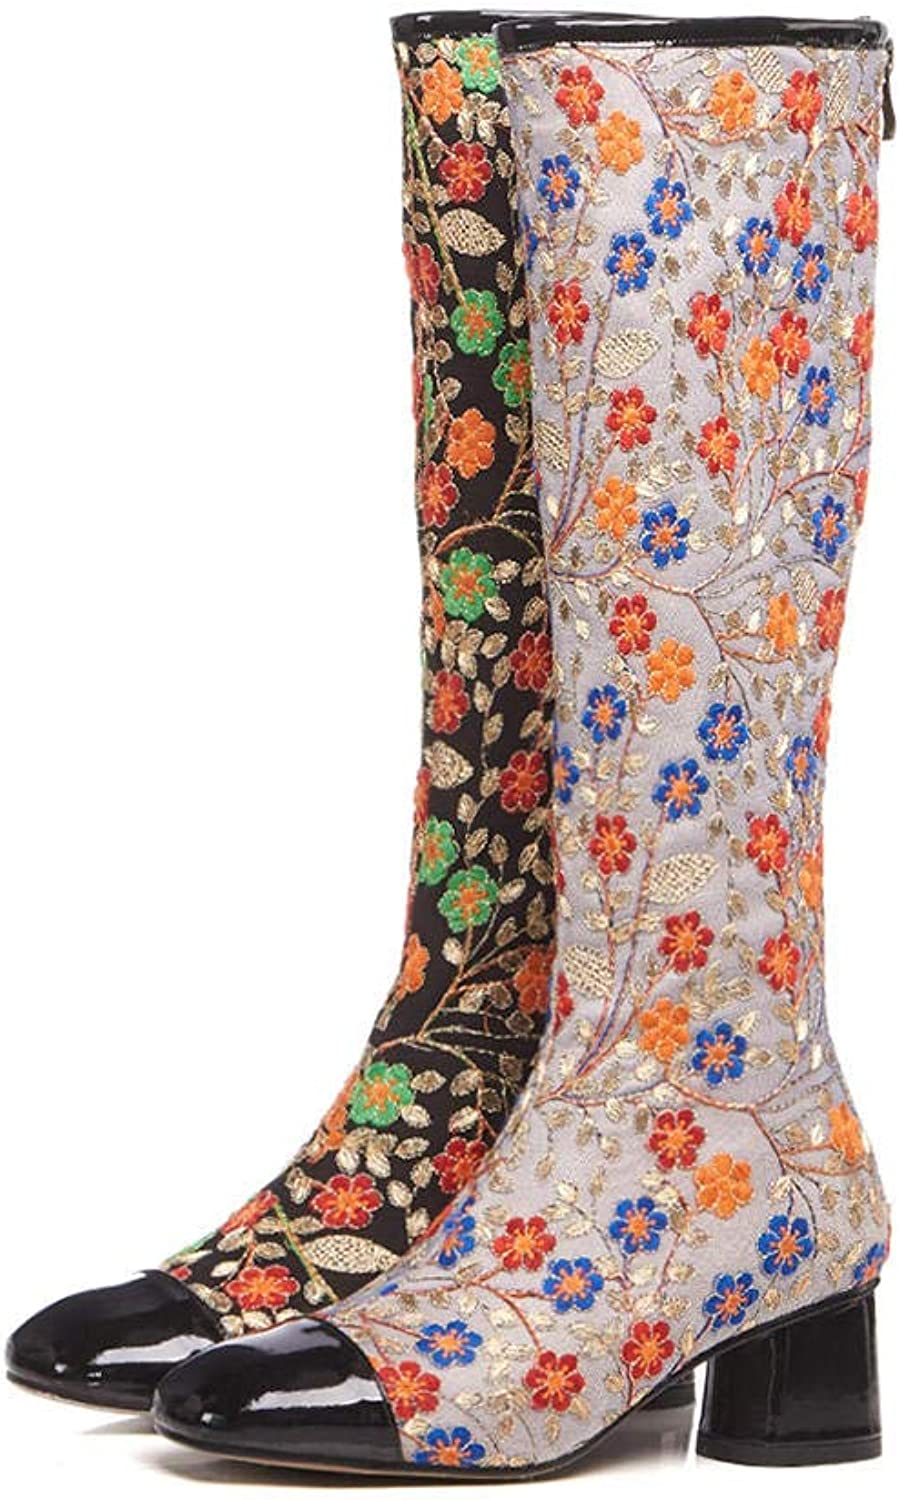 Hoxekle Knee High Boot Embroidery Printing Design Mid Heel Autumn Winter Casual Fashion Female Outdoor Long Boots